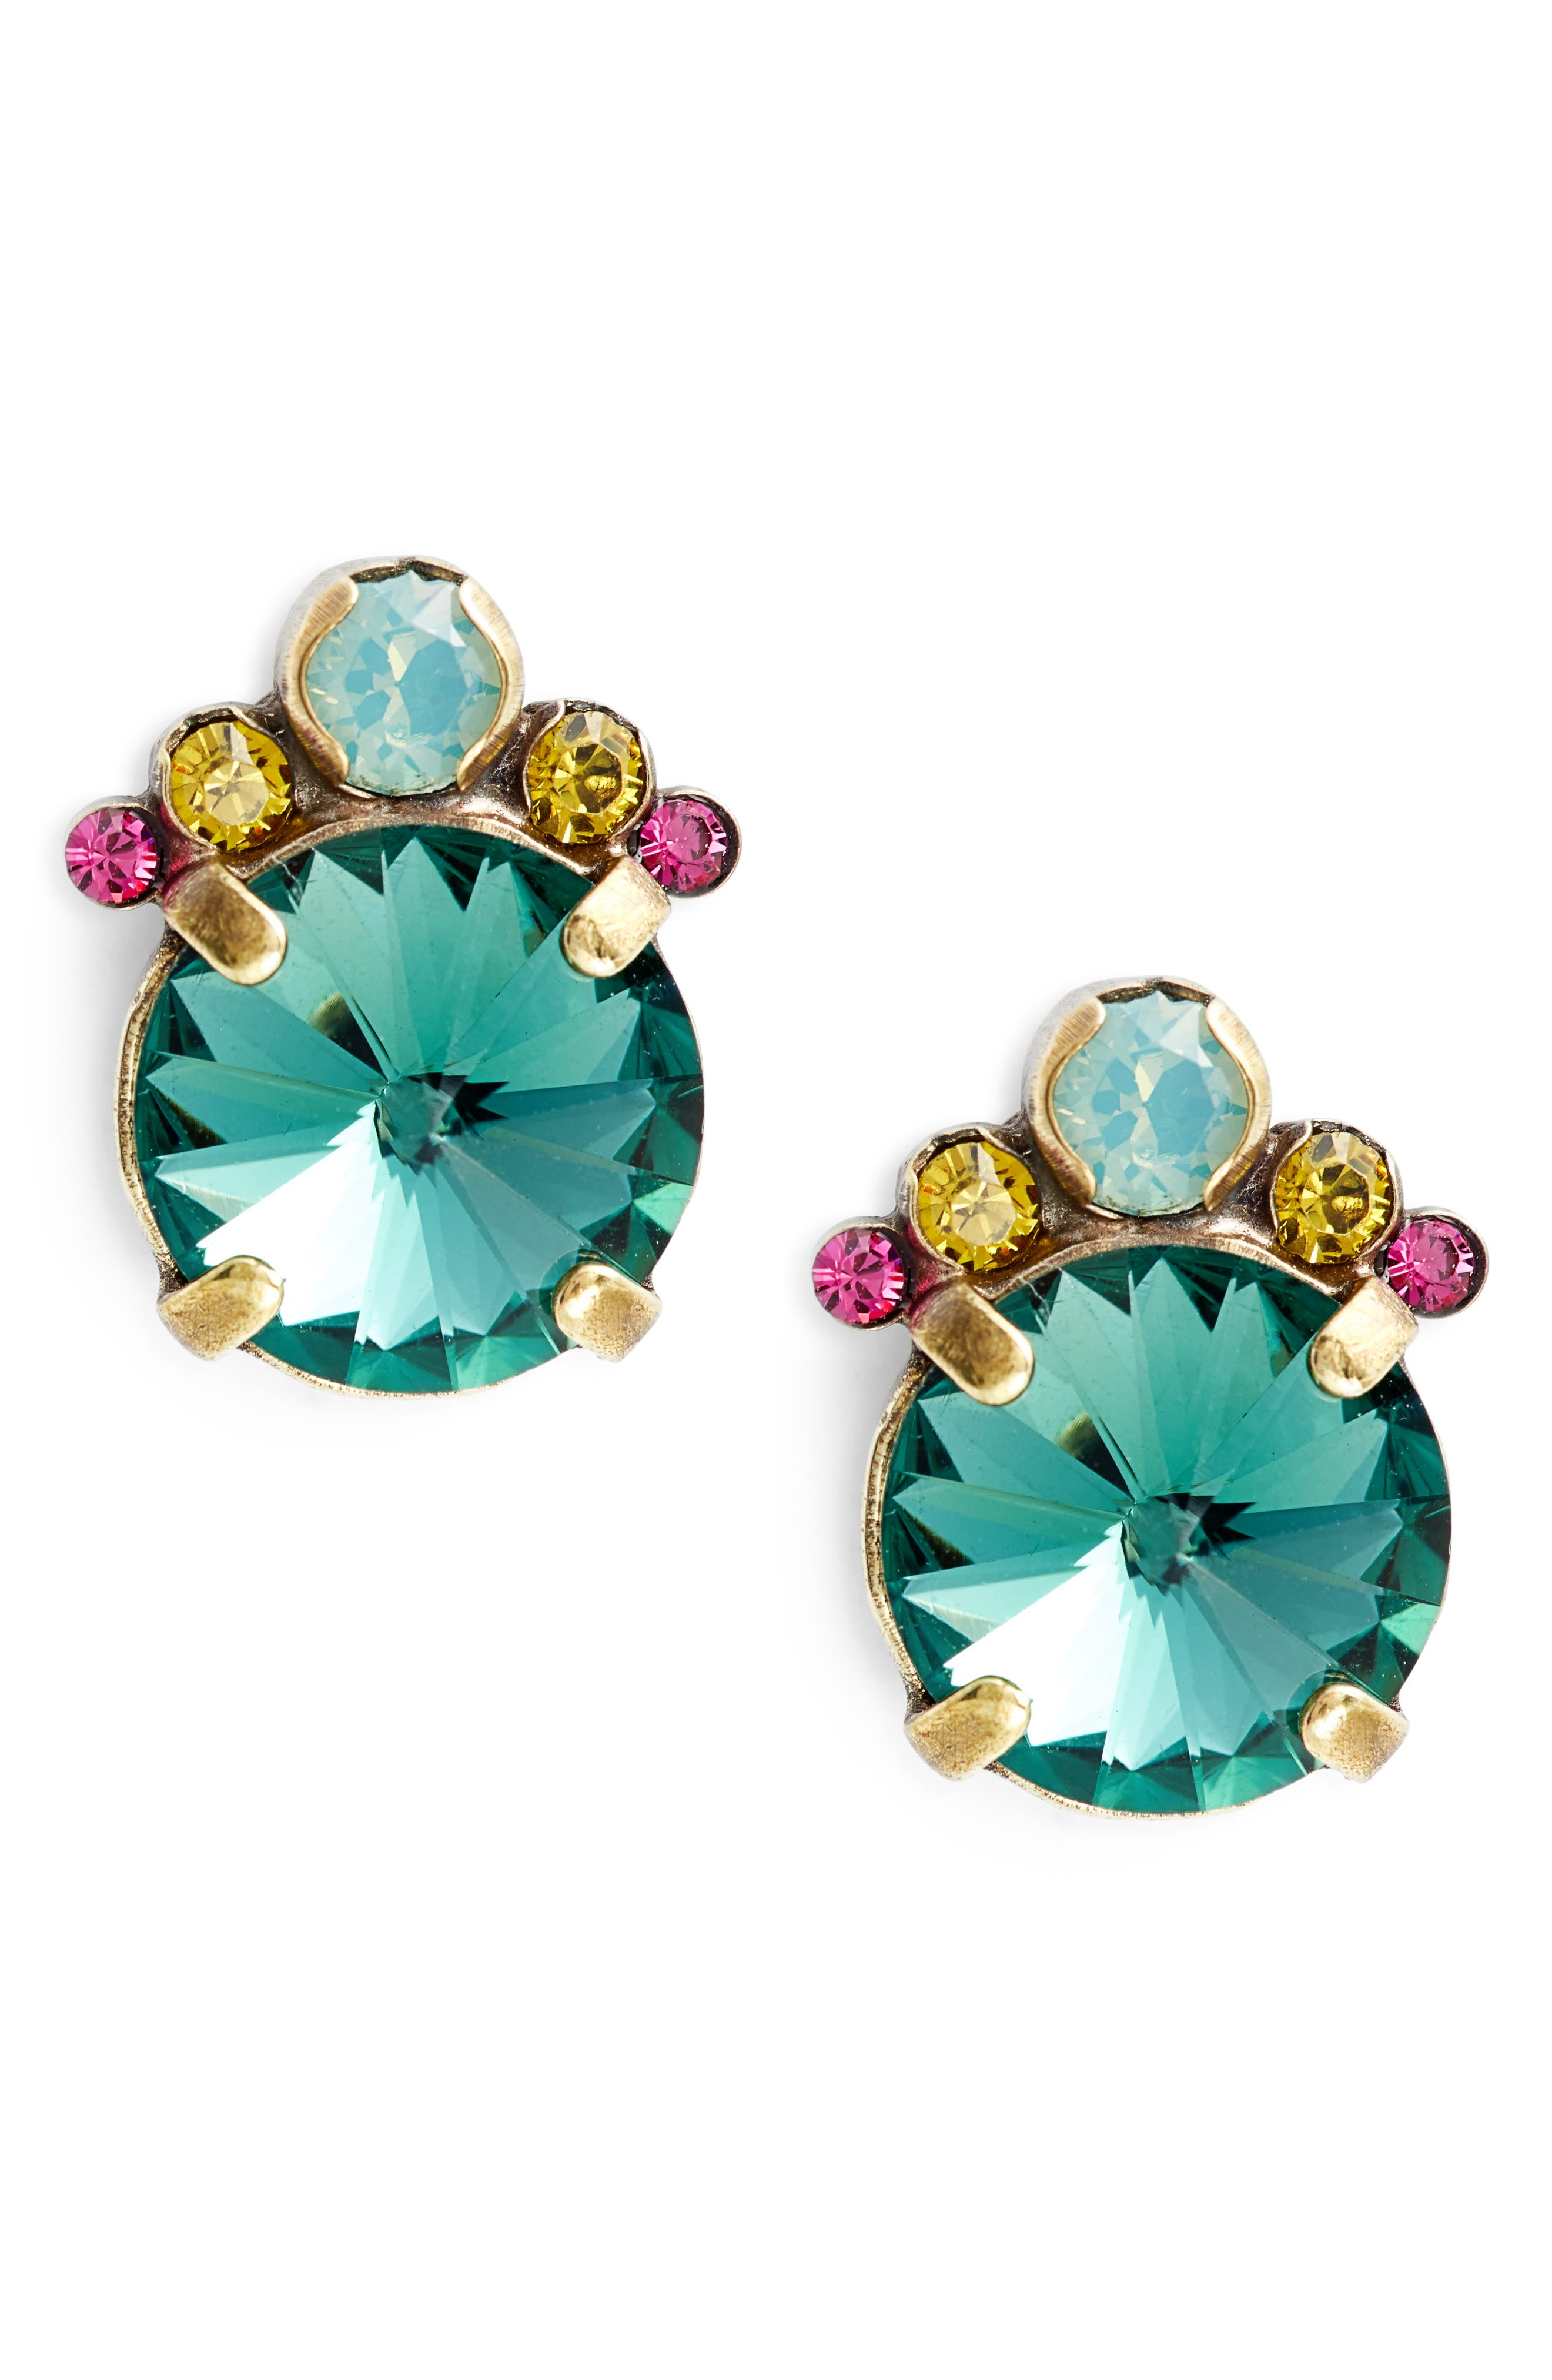 Regal Rounds Crystal Earrings,                             Main thumbnail 1, color,                             Blue-Green